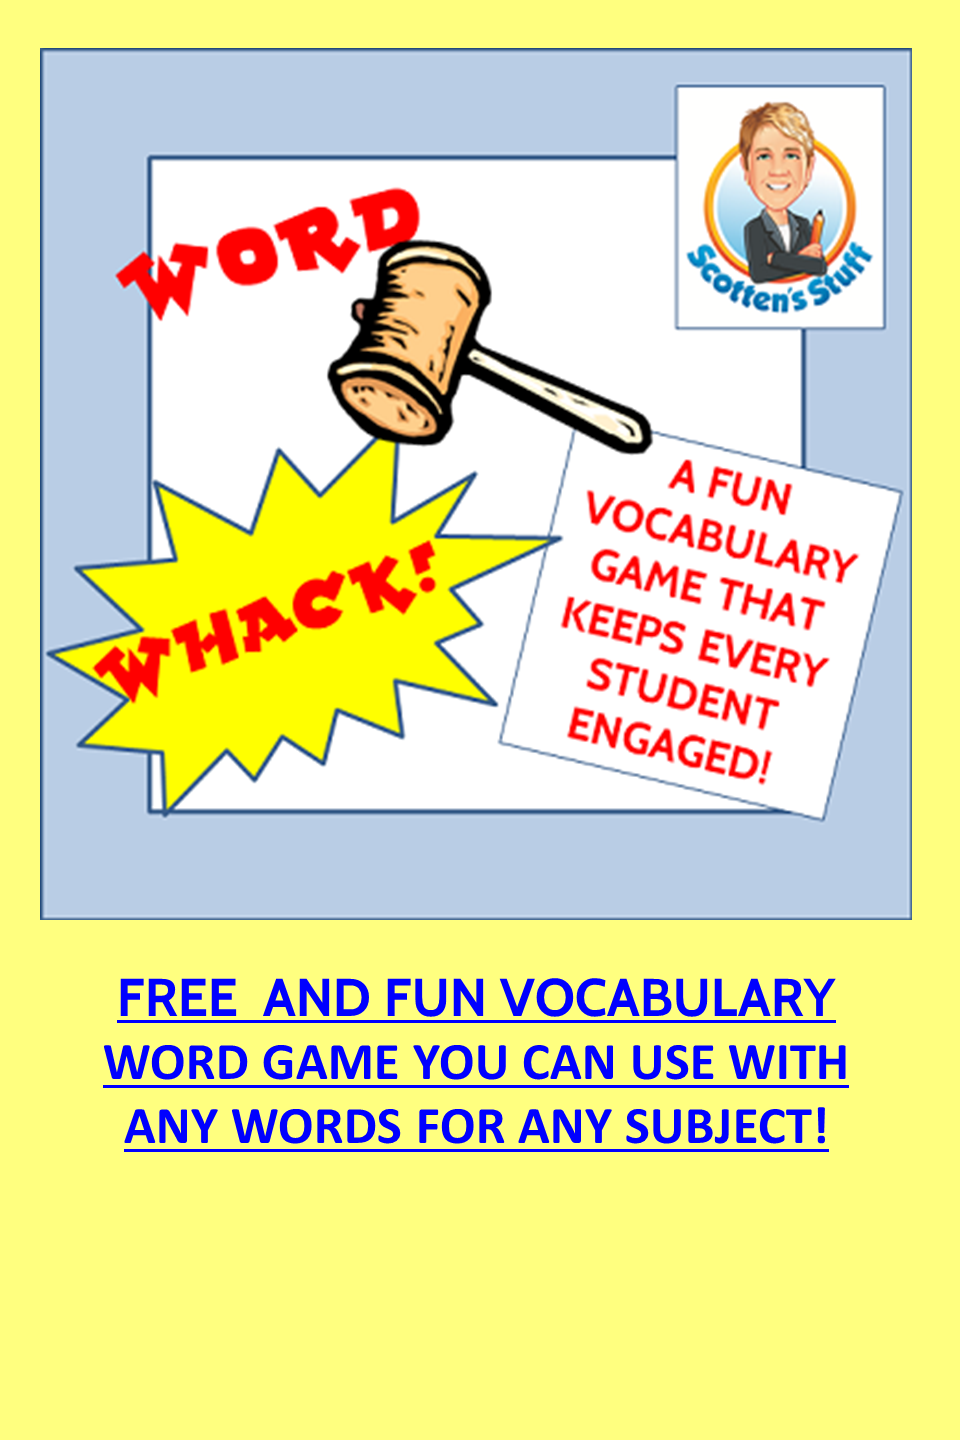 WordWhack Fun Vocabulary Game Vocabulary, Middle school